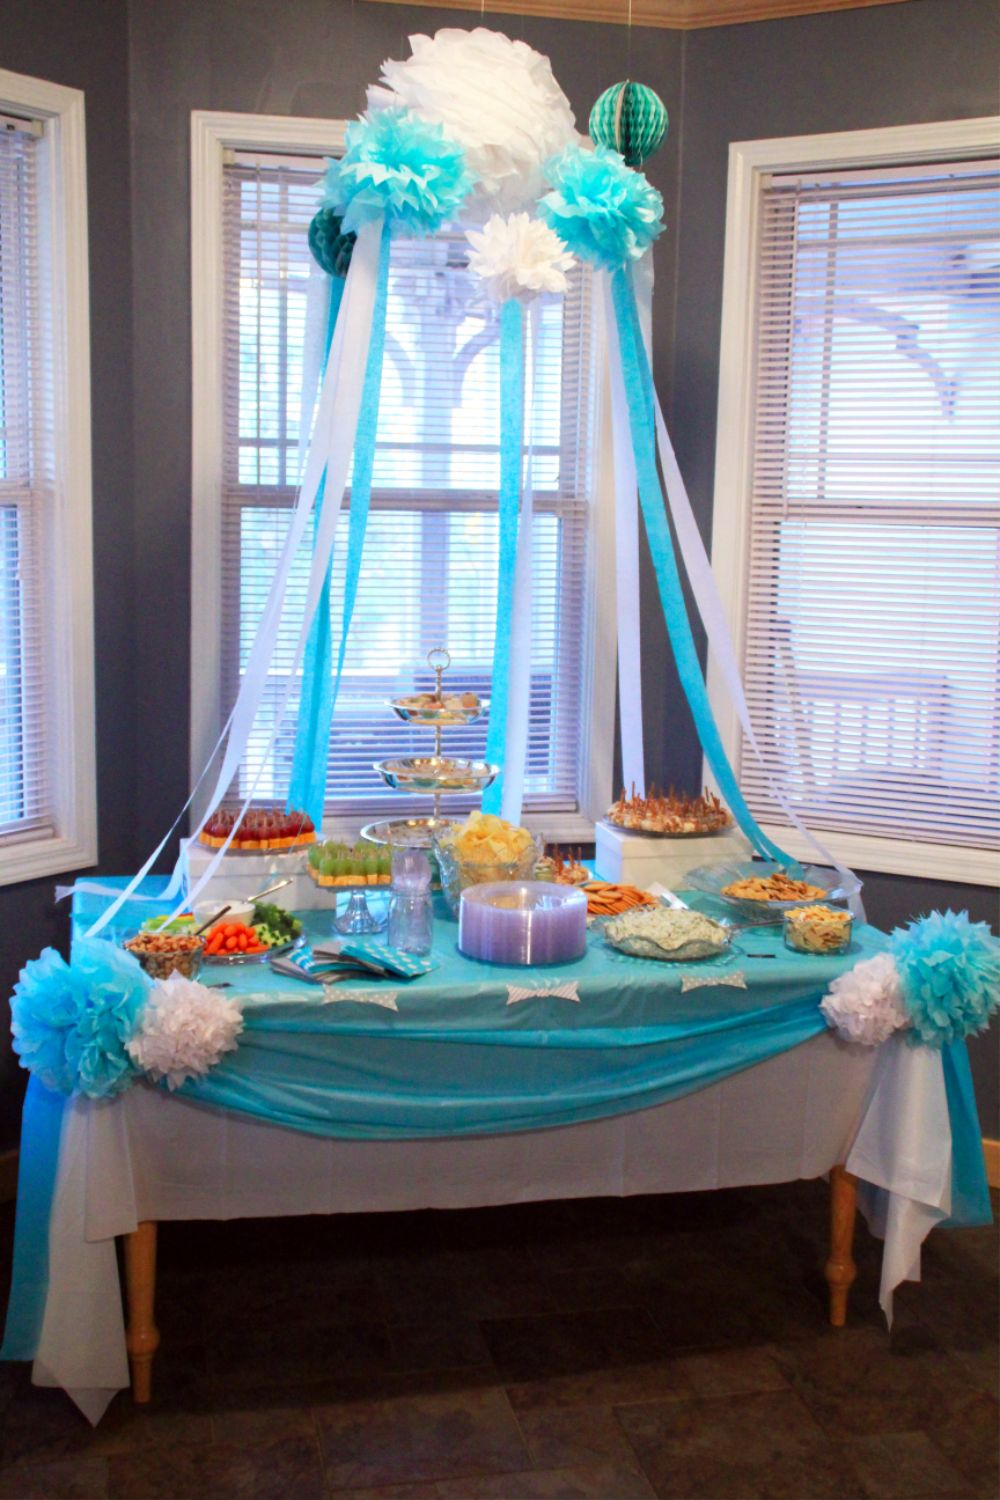 Baby Shower Decoration Ideas  Southern Couture. Brunch Ideas Richmond Va. Halloween Ideas Mom Dad Baby. Living Room Ideas Brown Furniture. Baby Shower Ideas Vintage Theme. Kitchen Splashback Ideas Brisbane. Cake Ideas Monster Truck. Party Ideas Activities For Adults. Kitchen Shower Ideas Pinterest